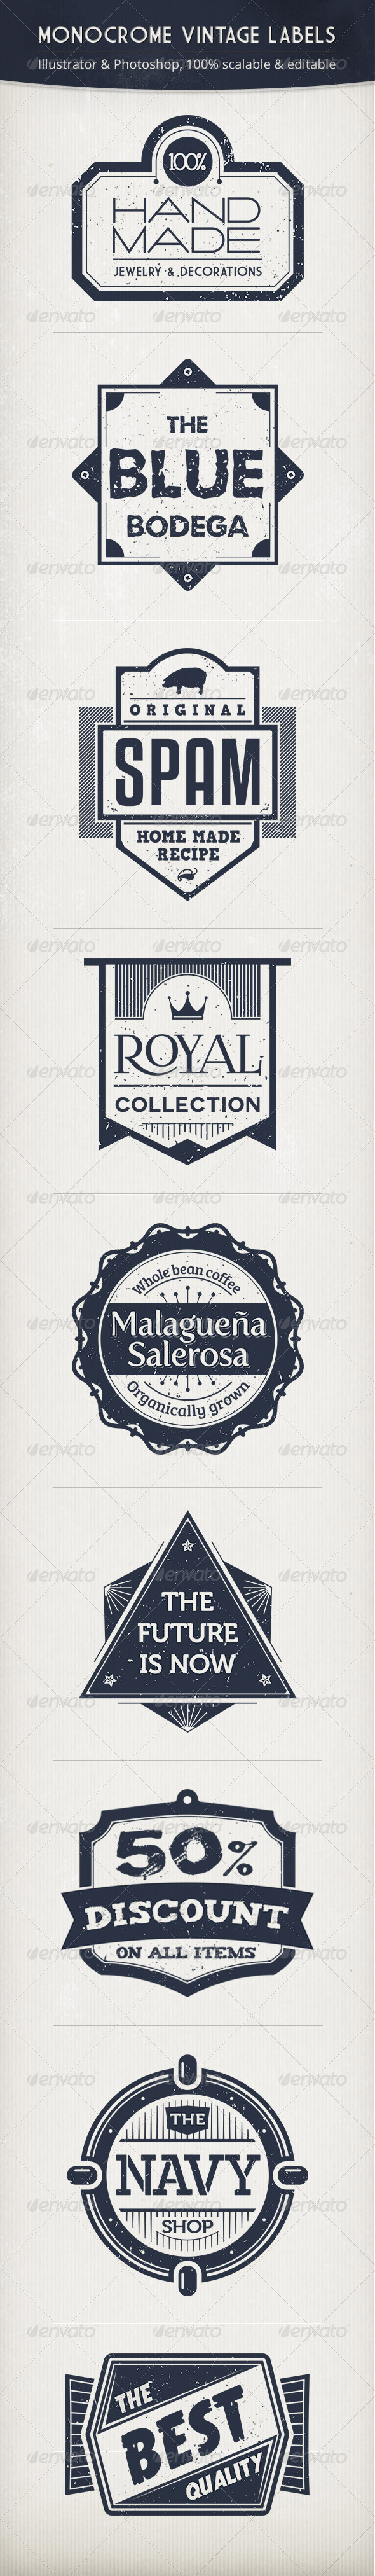 Monochrome Vintage Labels - Badges & Stickers Web Elements